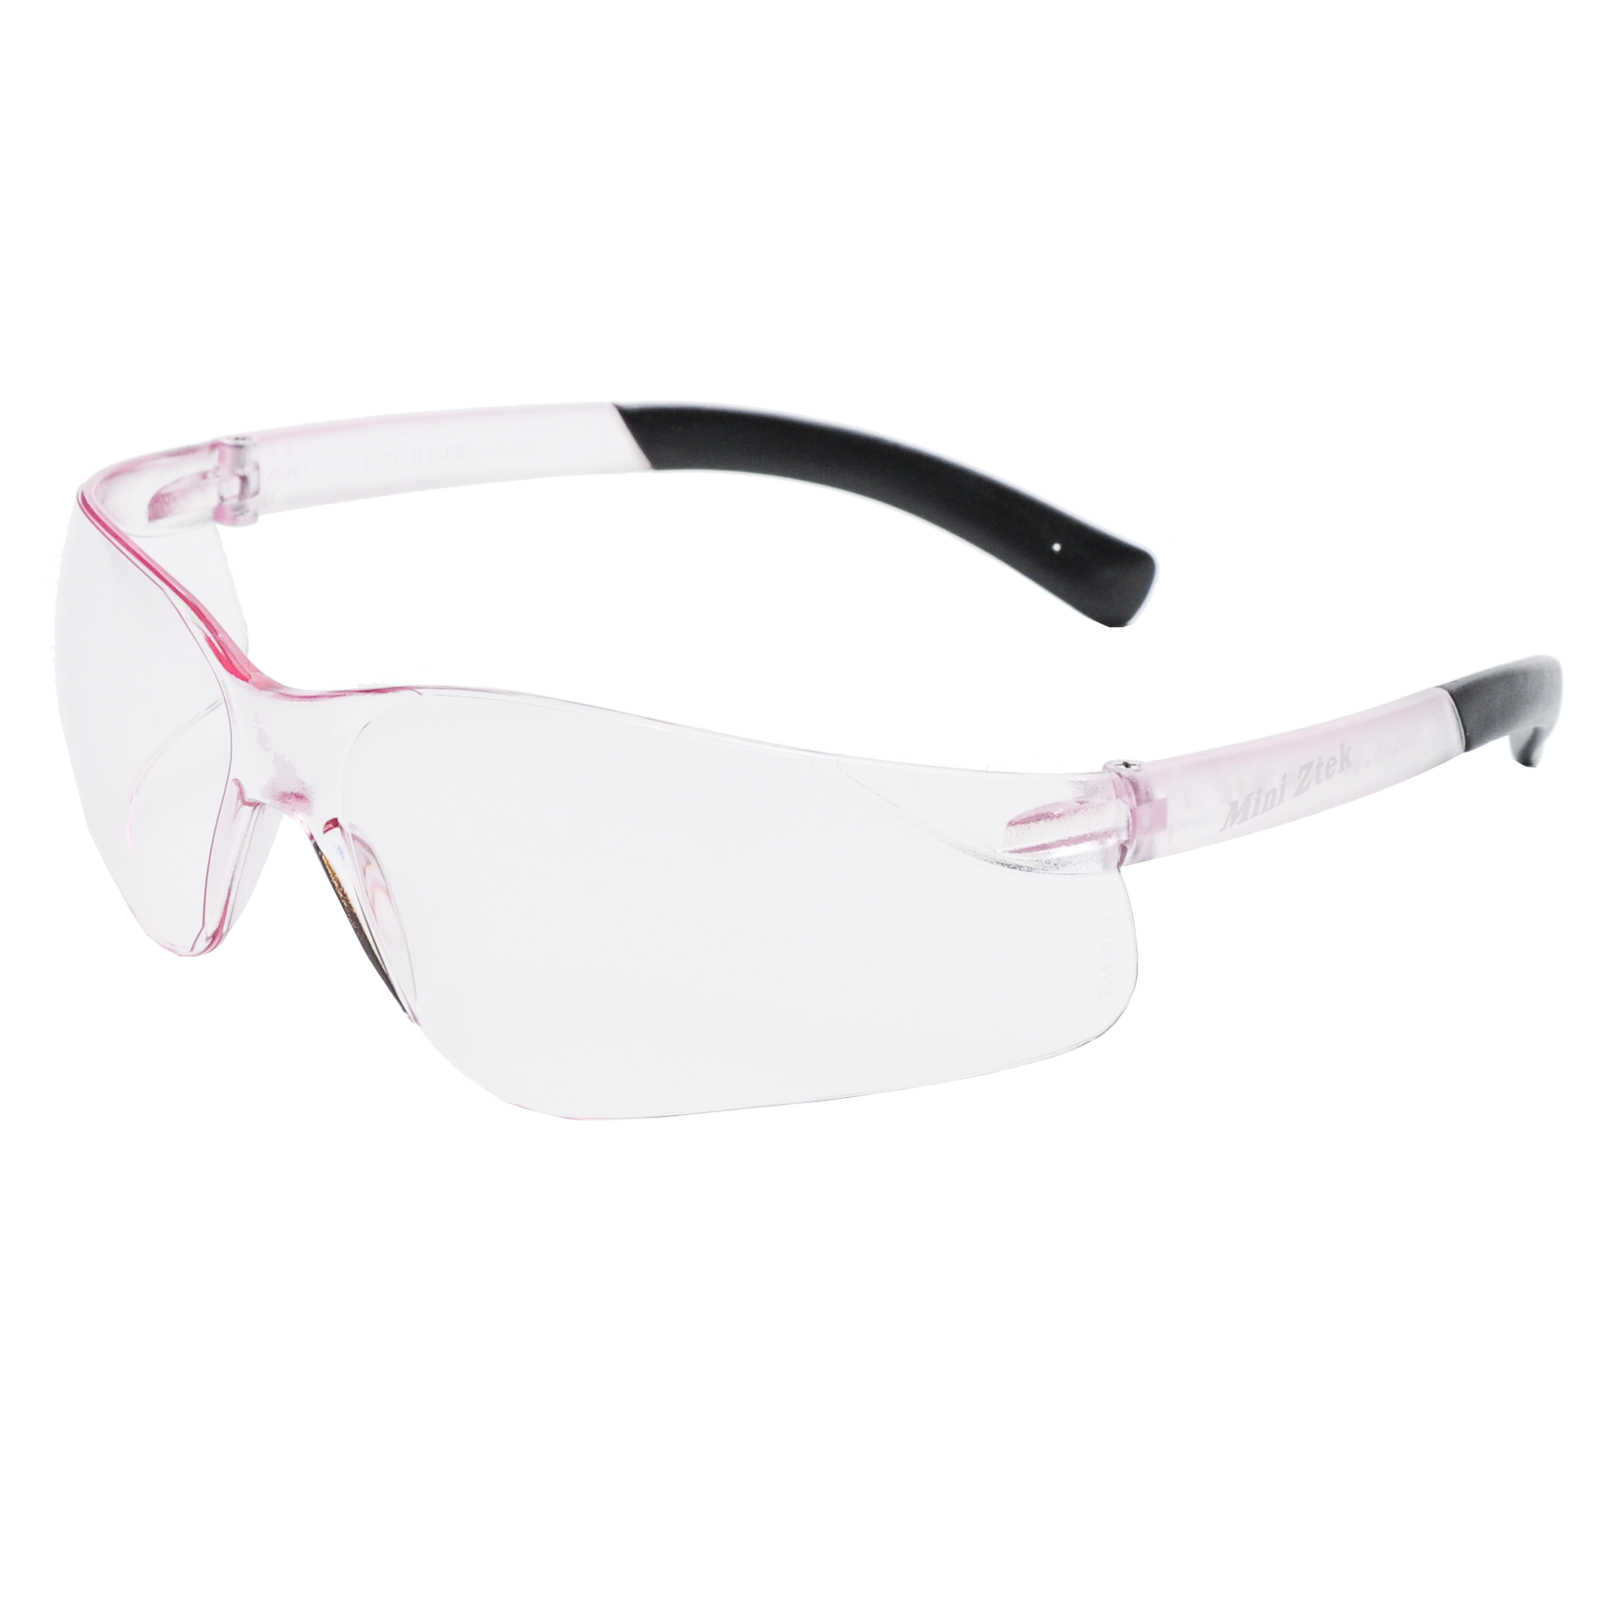 Ztek Mini Pink Safety Glass Each